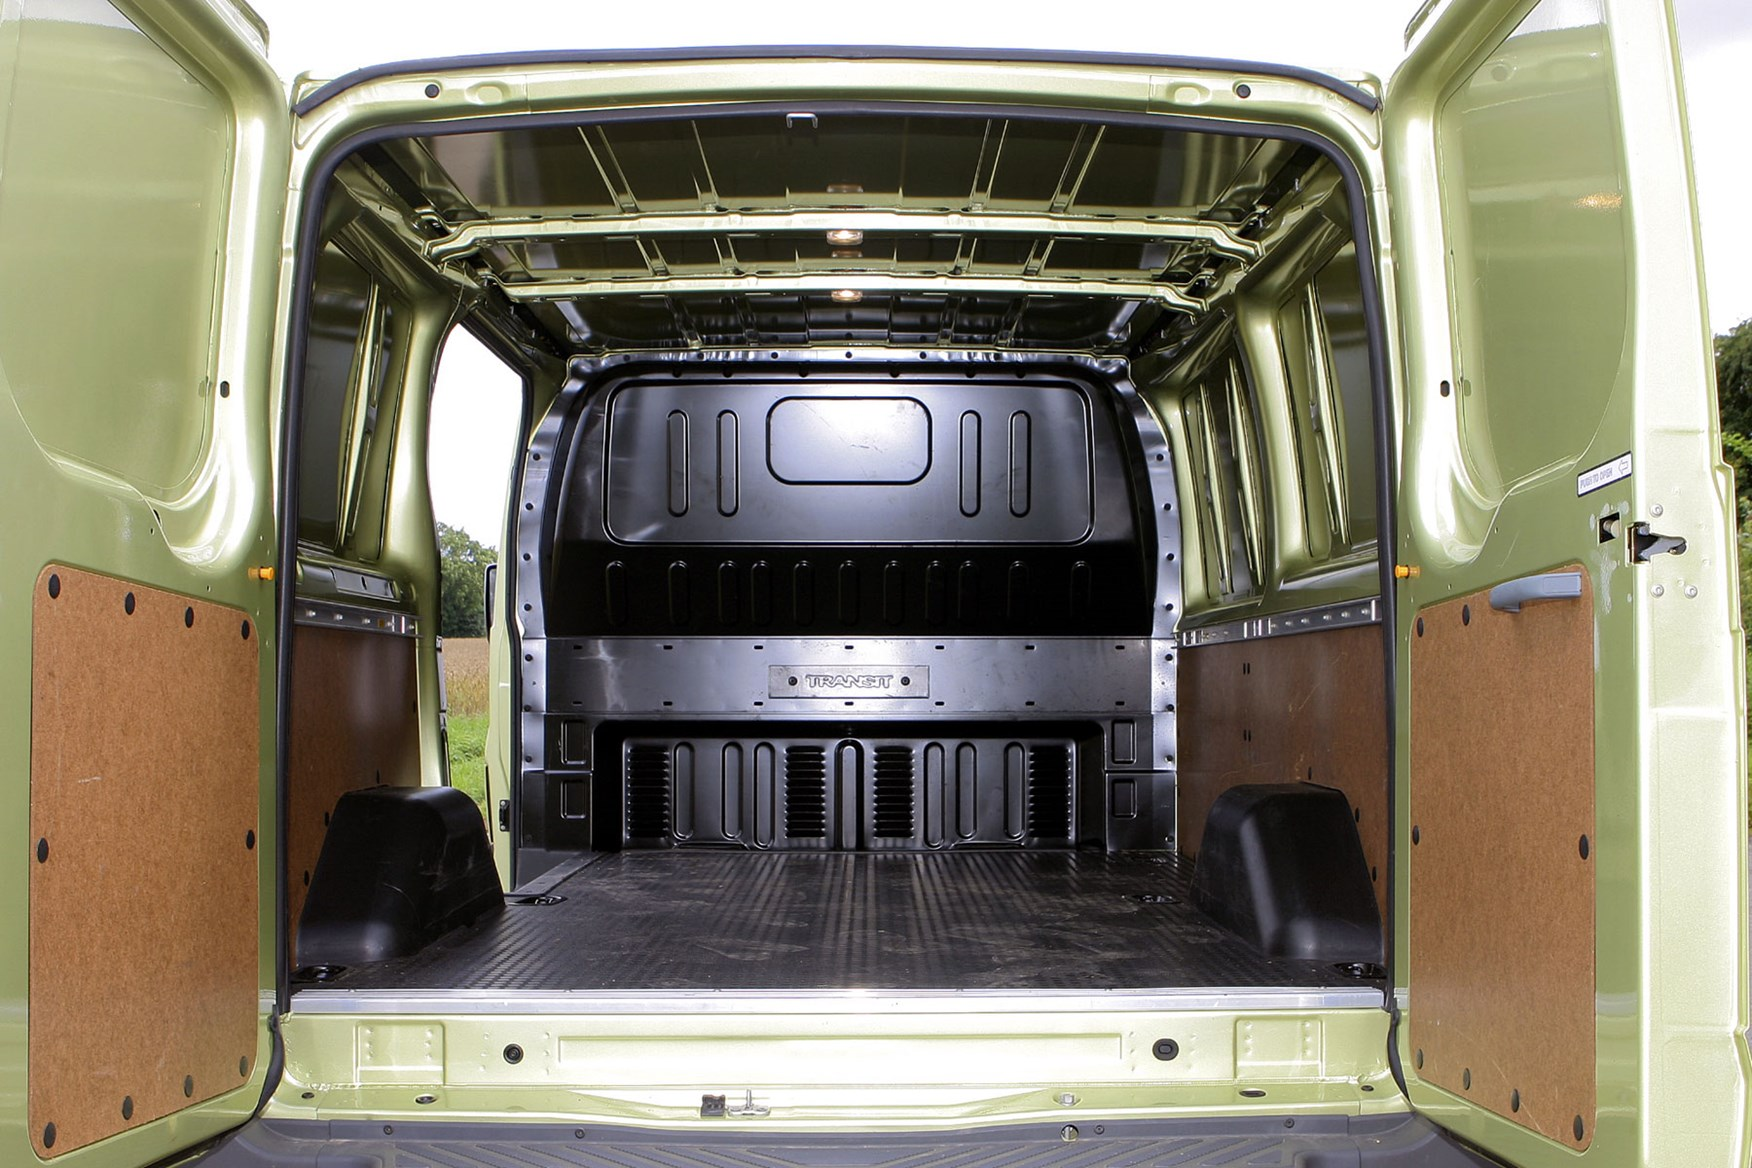 Ford Transit (2006-2014) load capacity